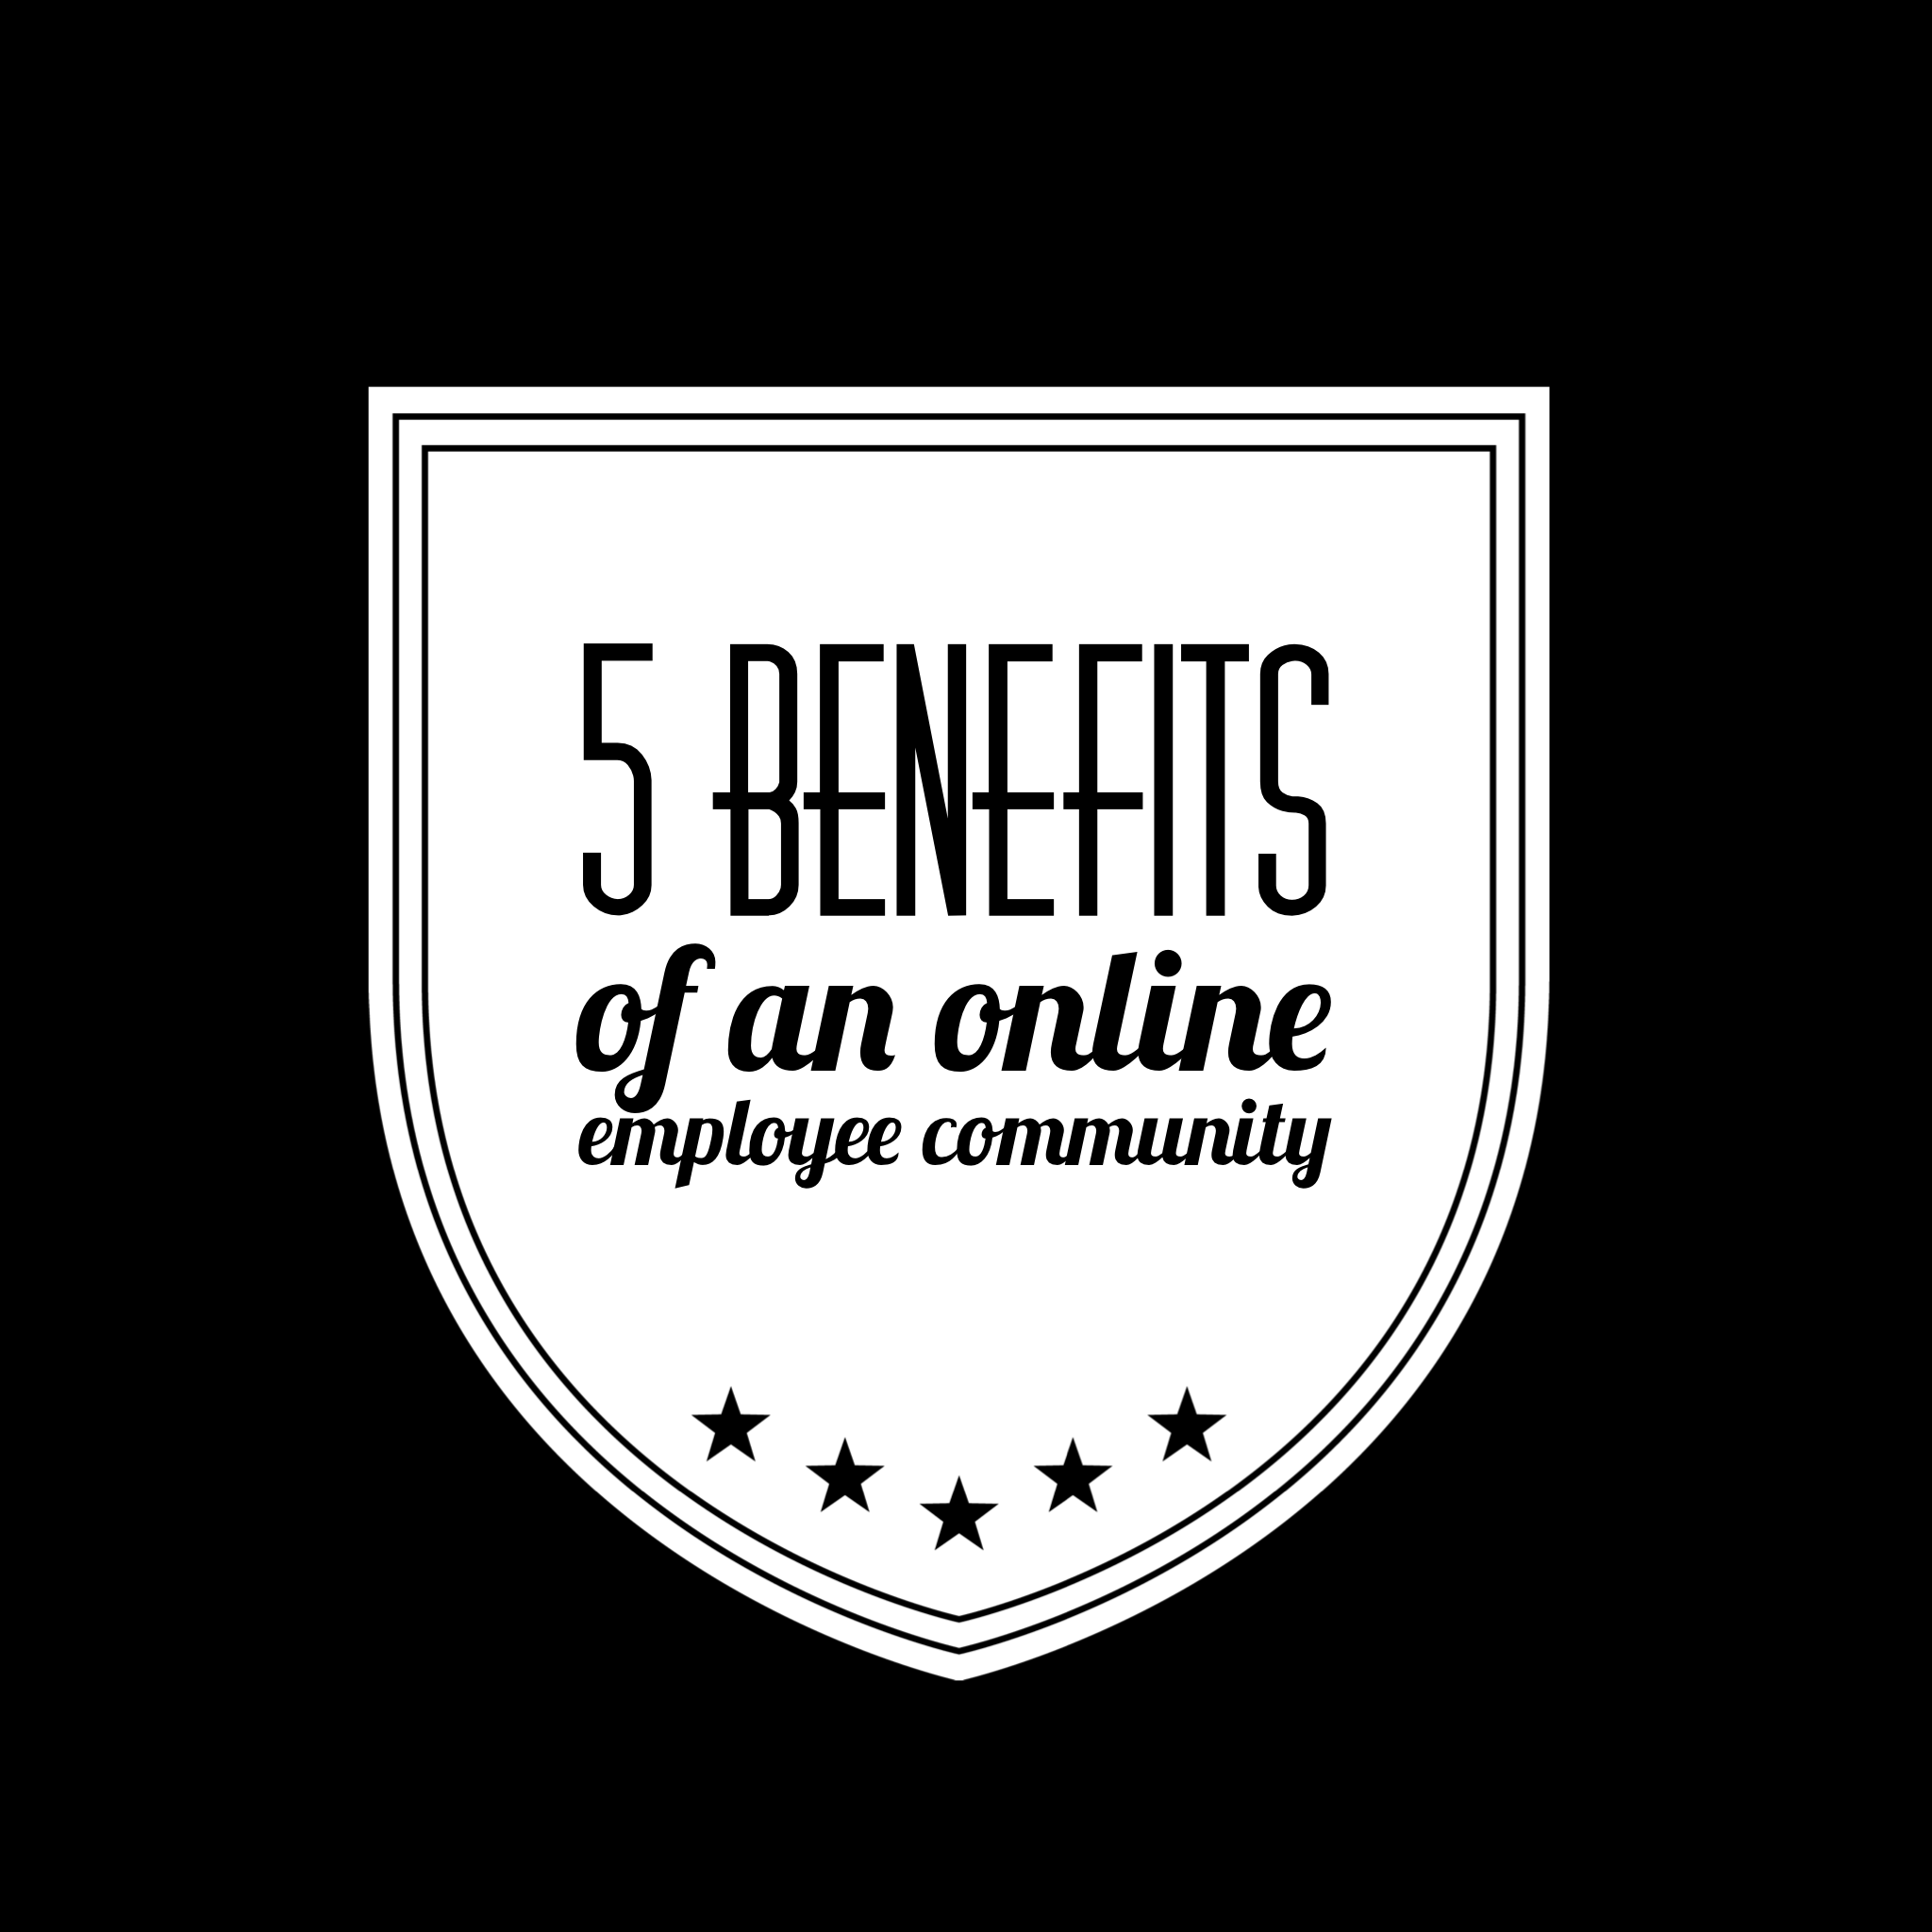 5 Benefits of an Online Employee Community